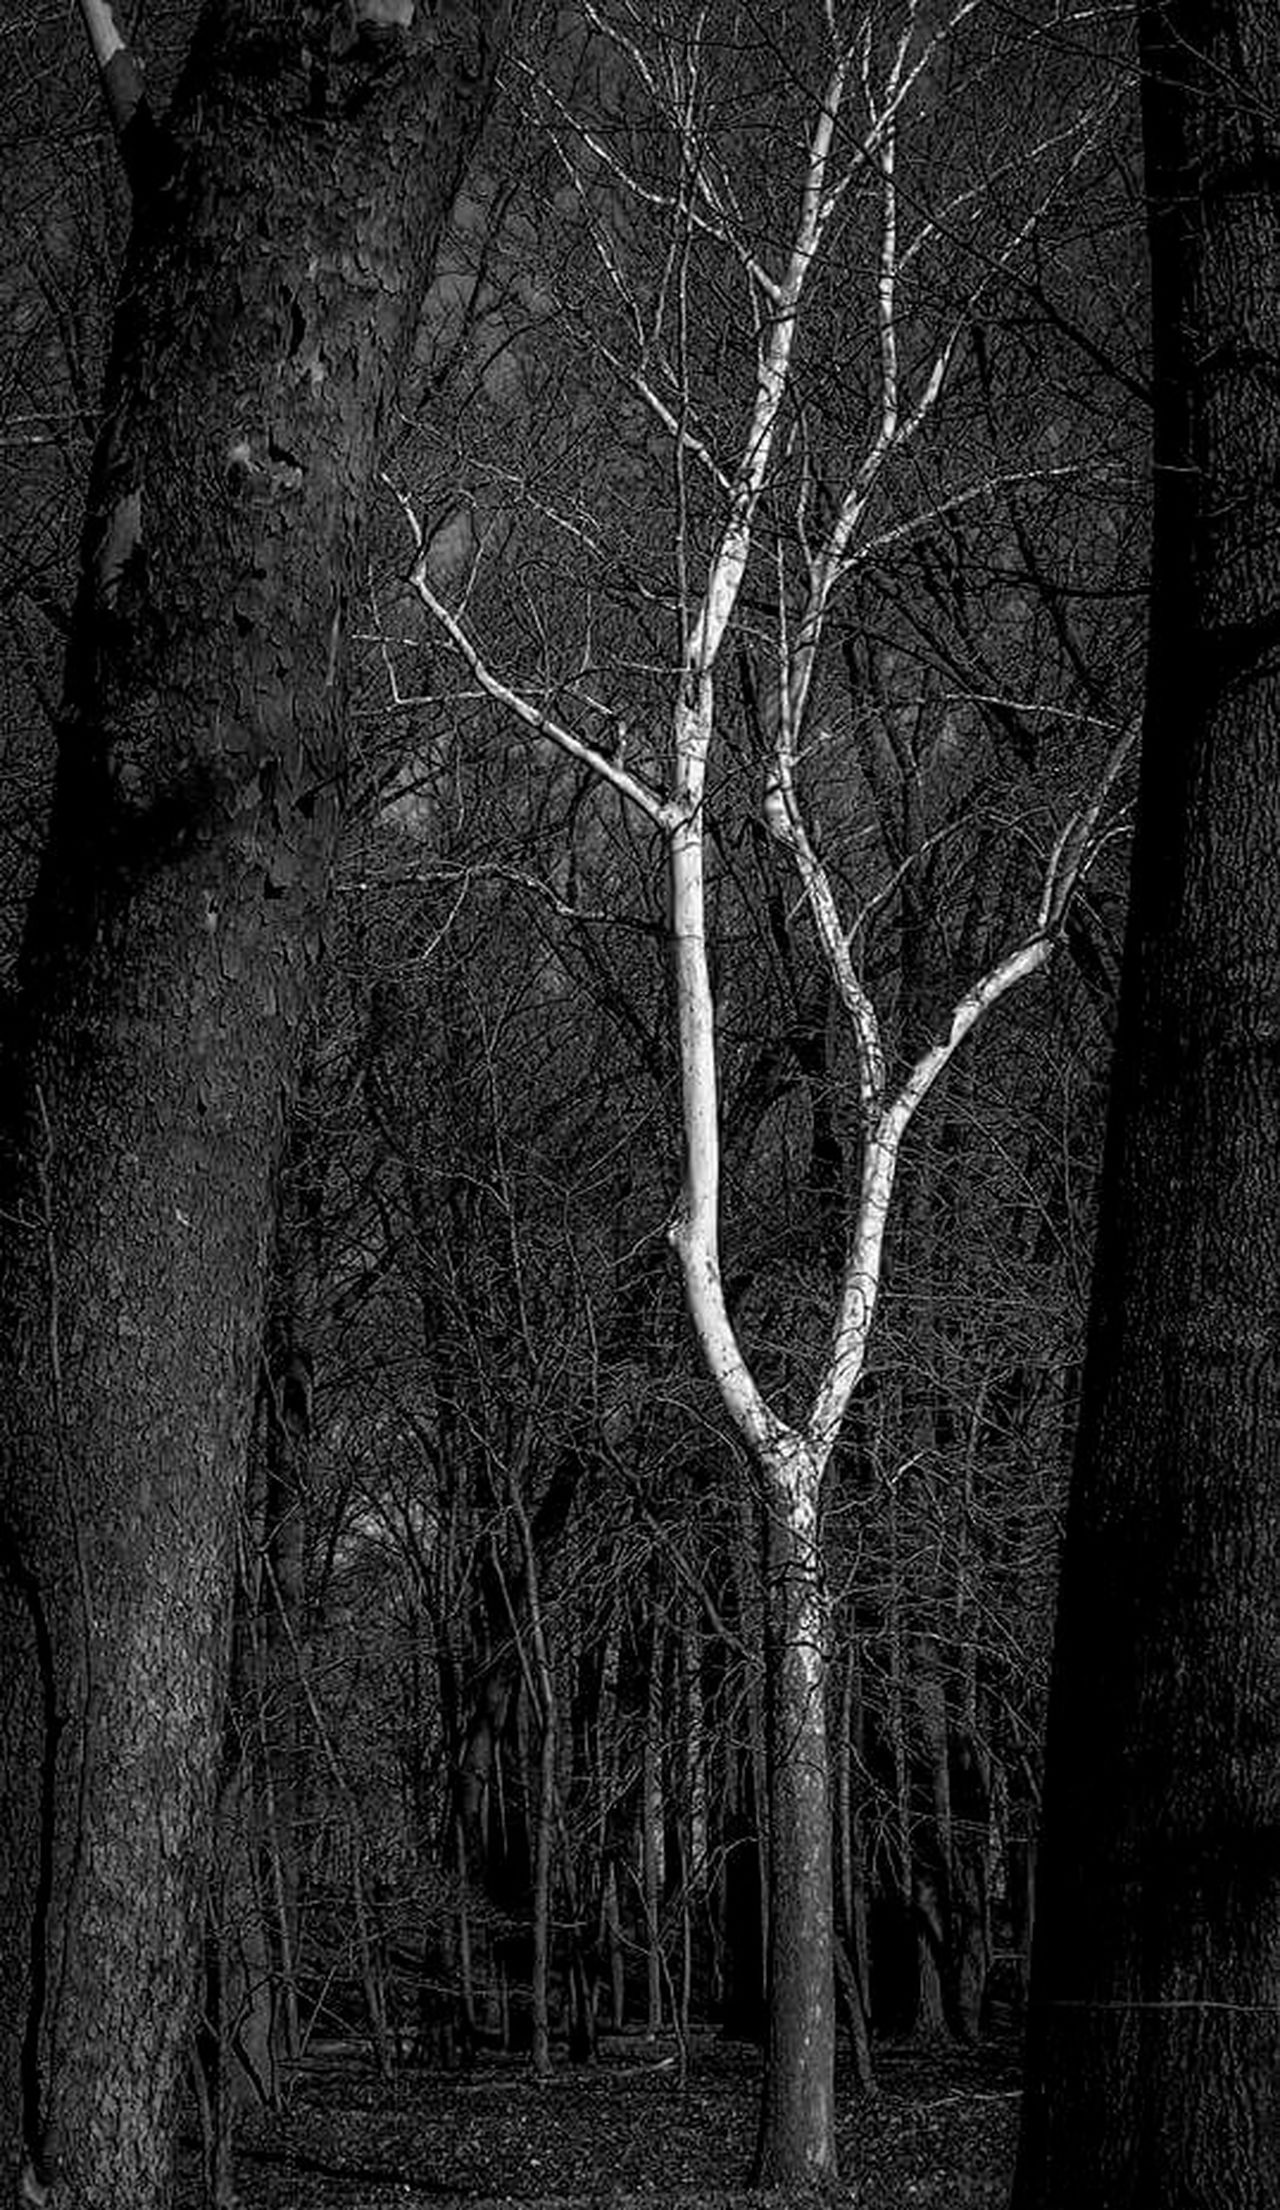 Darkness cannont drive out darkness; Only light can do that ! Woods Forrest Trees Tree Darkness And Light Dark Contrast EyeEm Best Shots - Black + White Opposites Alone Walk In The Forest Isolation Segregation  Black And White Black And White Photography Nature Sycamore EyeEm Nature Lover Eye4photography  Nature Photography Edits 1/28